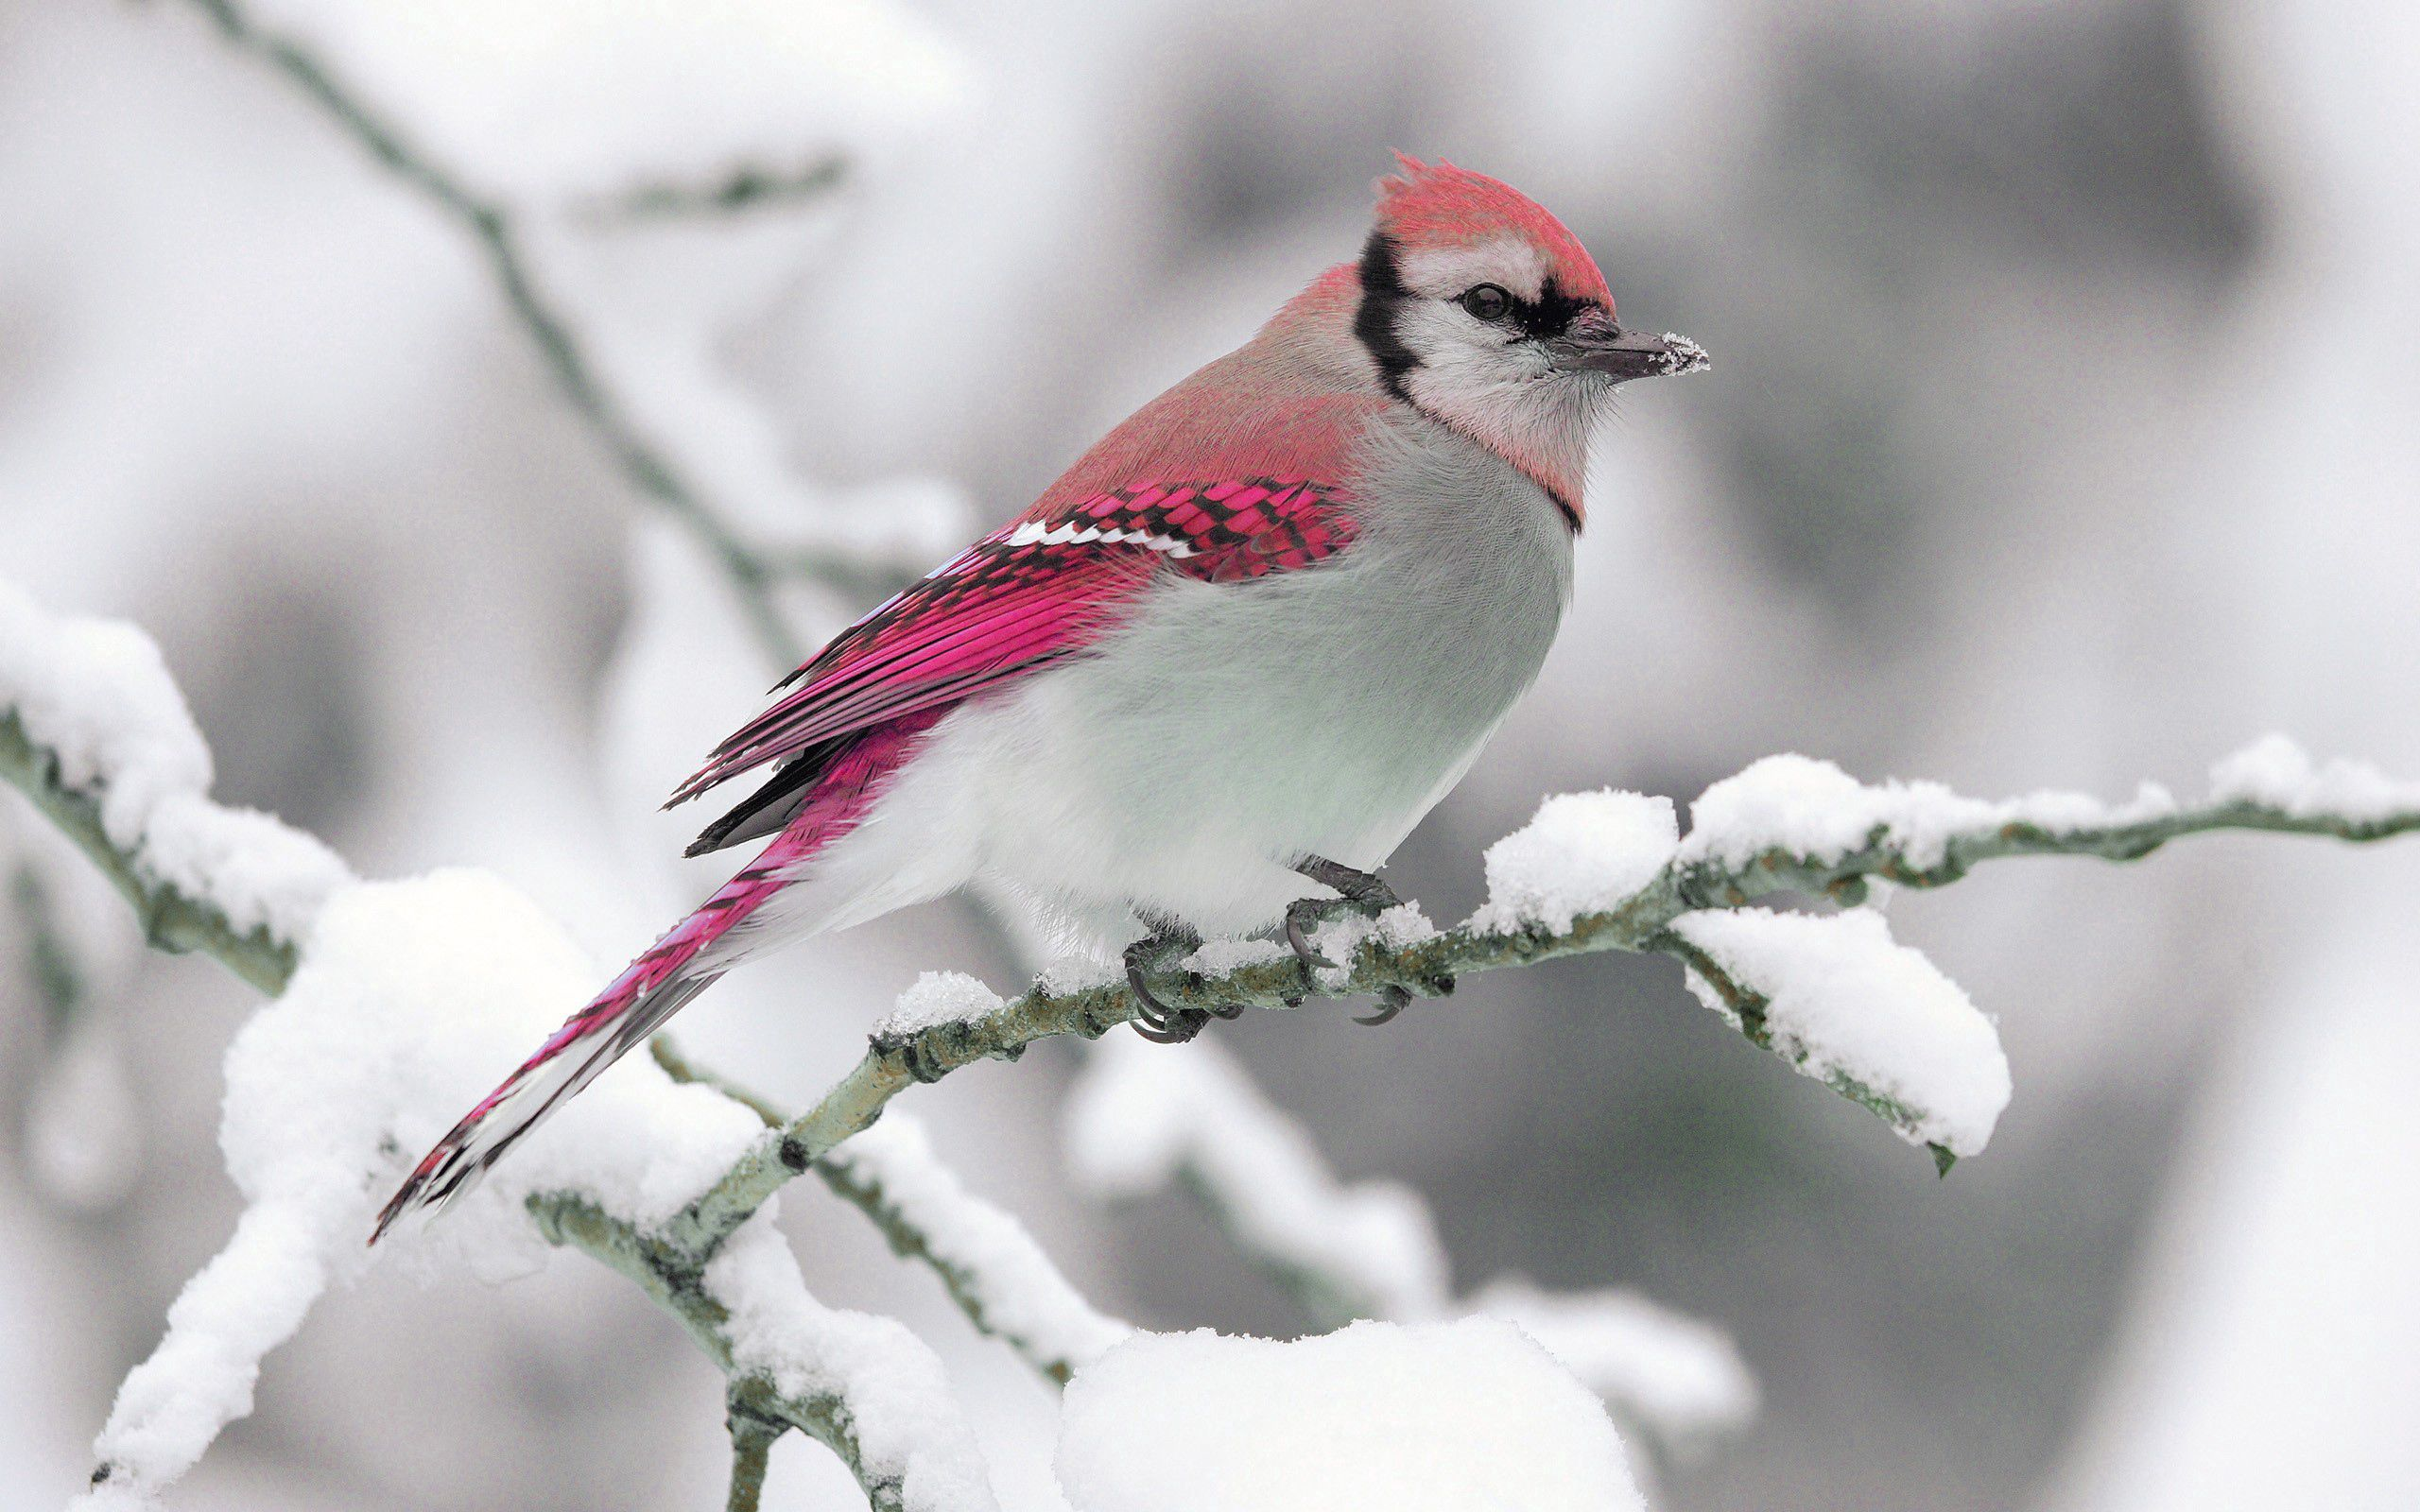 152762 download wallpaper Animals, Bird, Winter, Snow, Branch, Nature screensavers and pictures for free